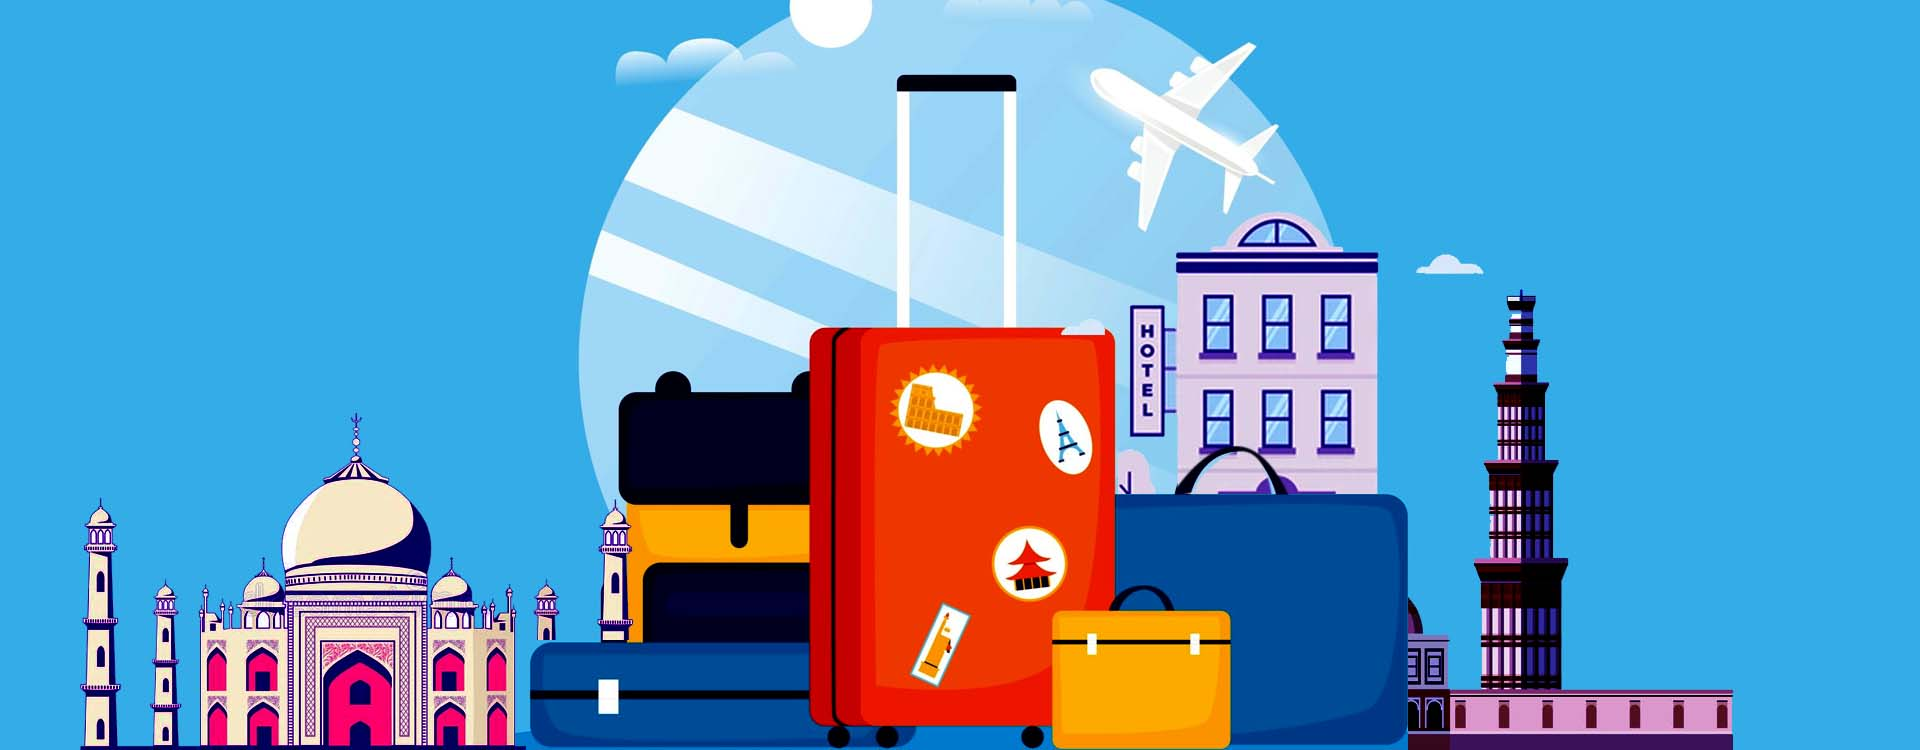 Domestic travel and hospitality sector is going through a tough time with rising cases in pandemic.